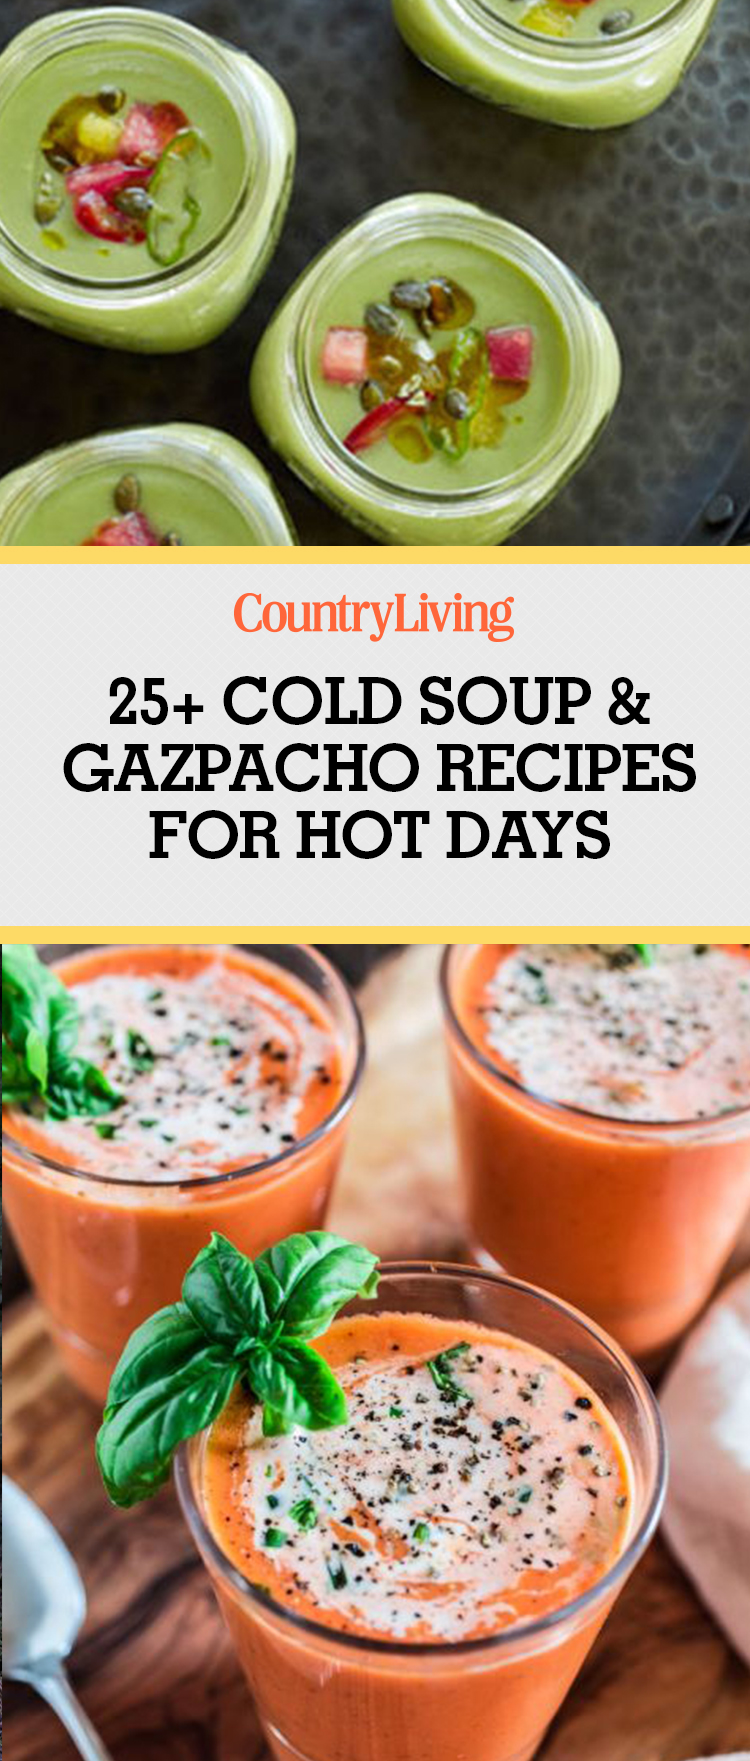 29 Cold Summer Soups and Gazpacho